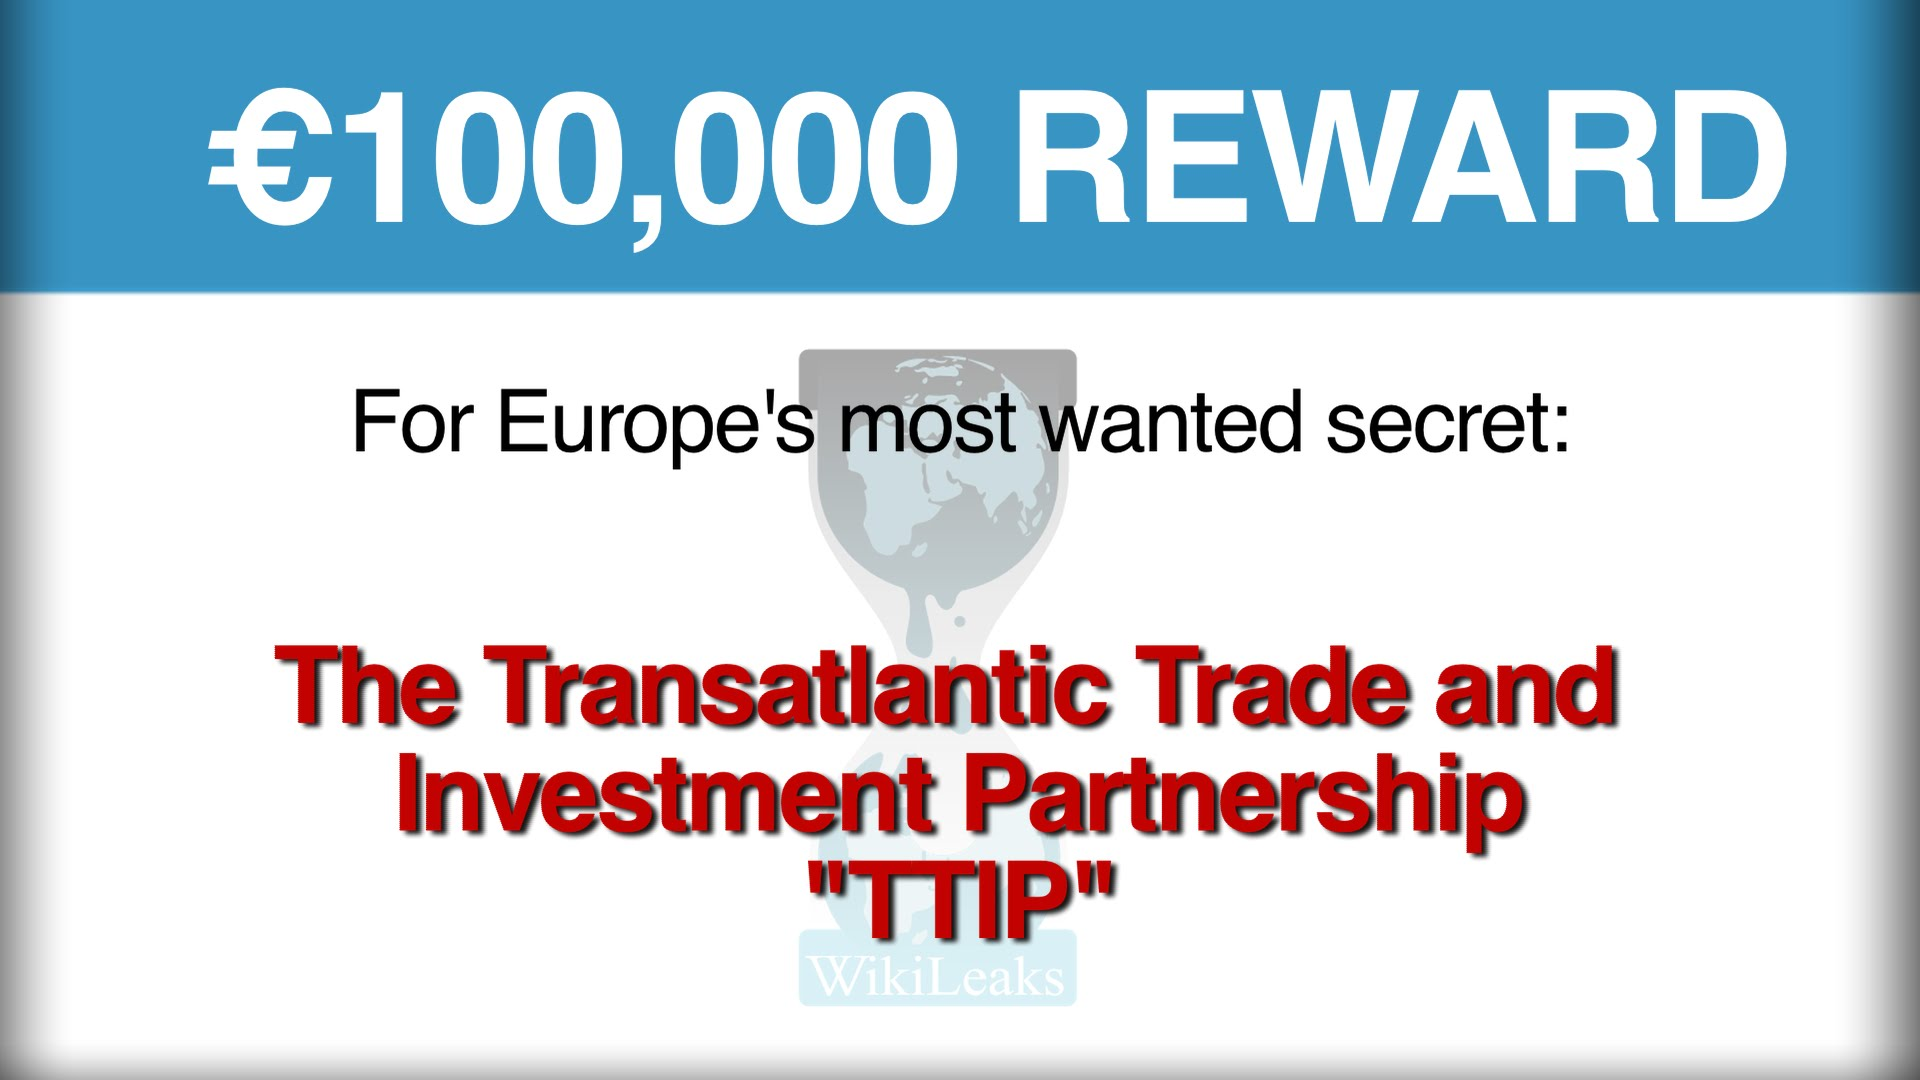 WikiLeaks is raising €100,000 reward for the Transatlantic Trade and Investment Partnership 'TTIP'